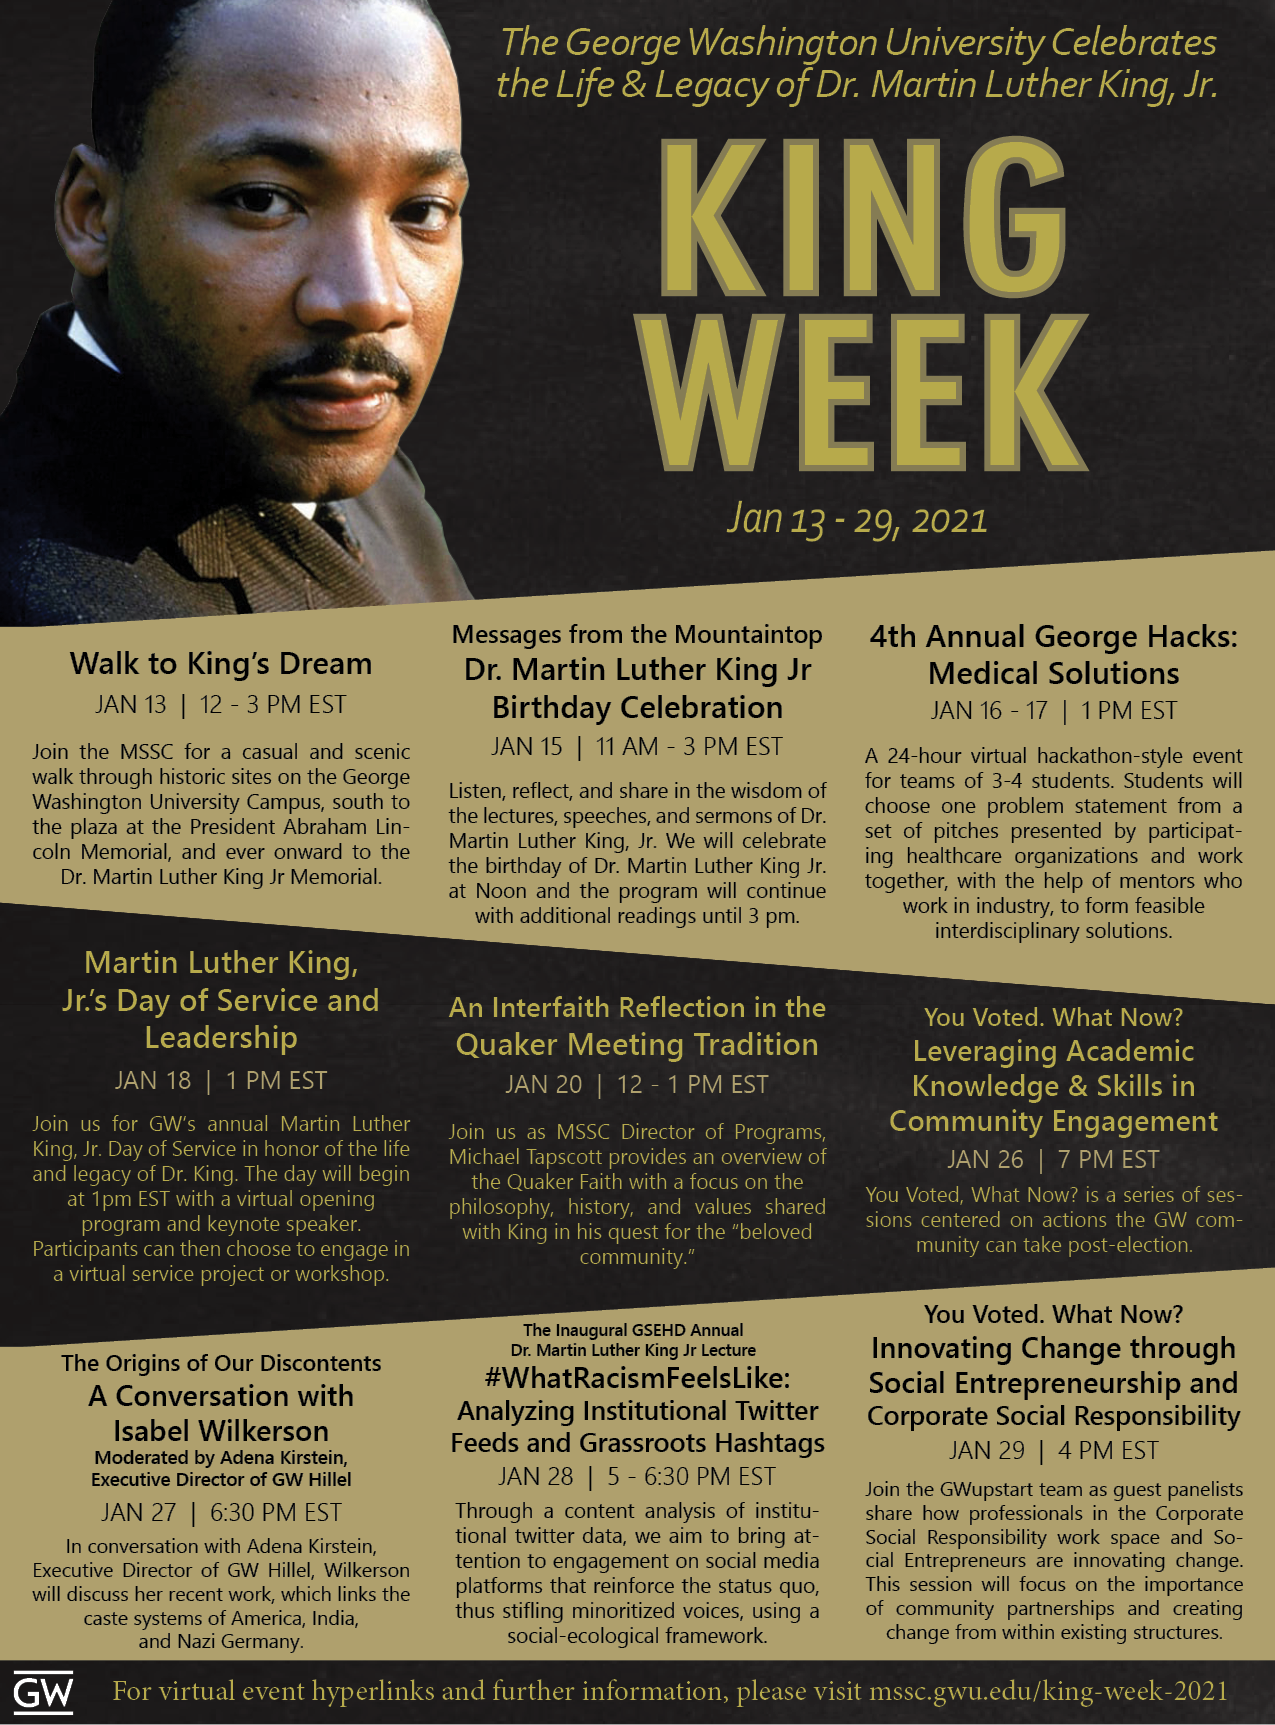 King Week 2021 Flyer. See above for full schedule in text form.